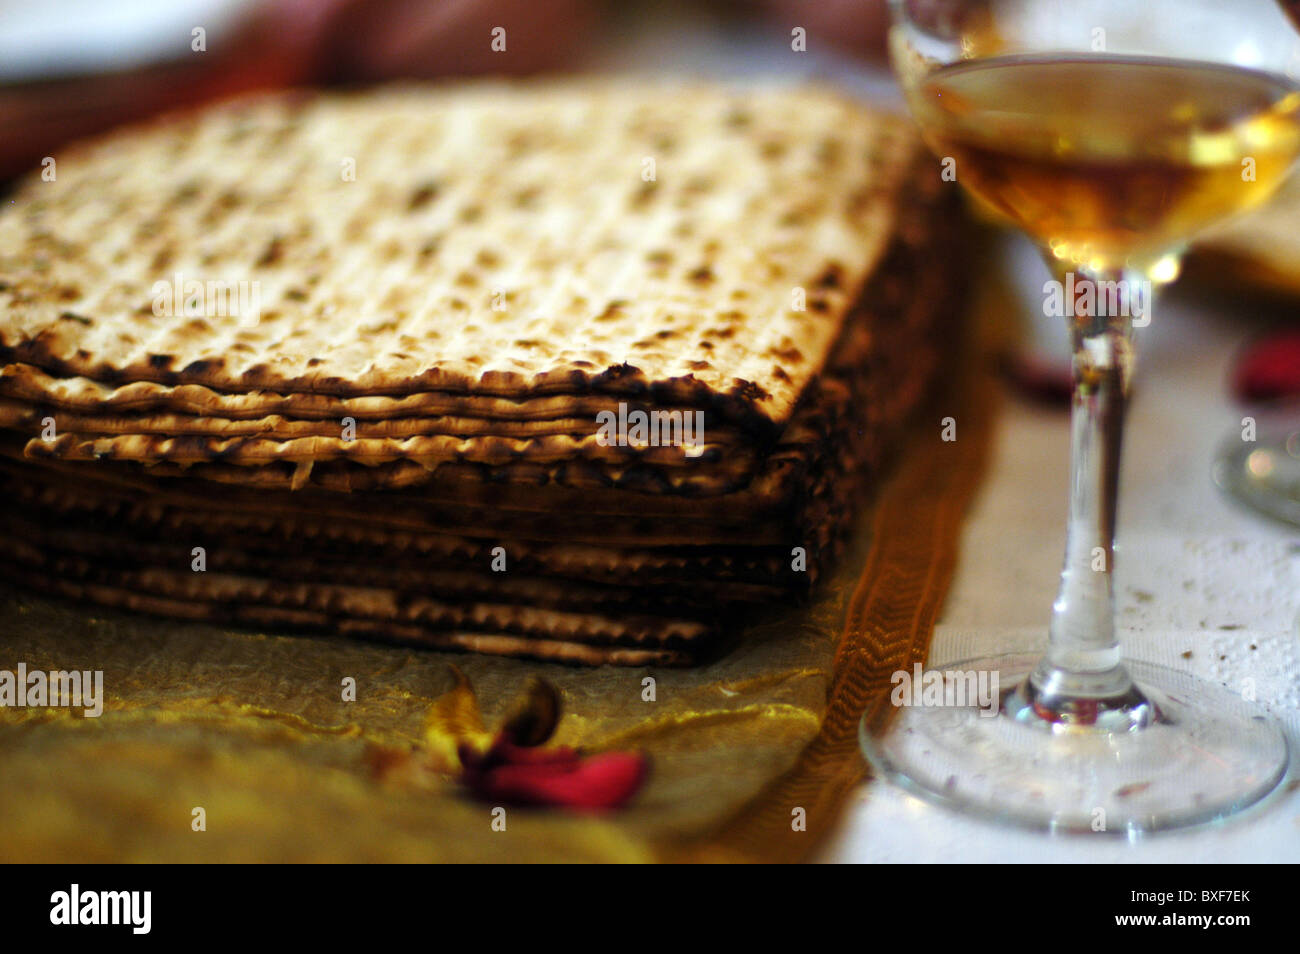 Matsah and white wine on a table for the Jewish holiday Passover festival in Israel. - Stock Image